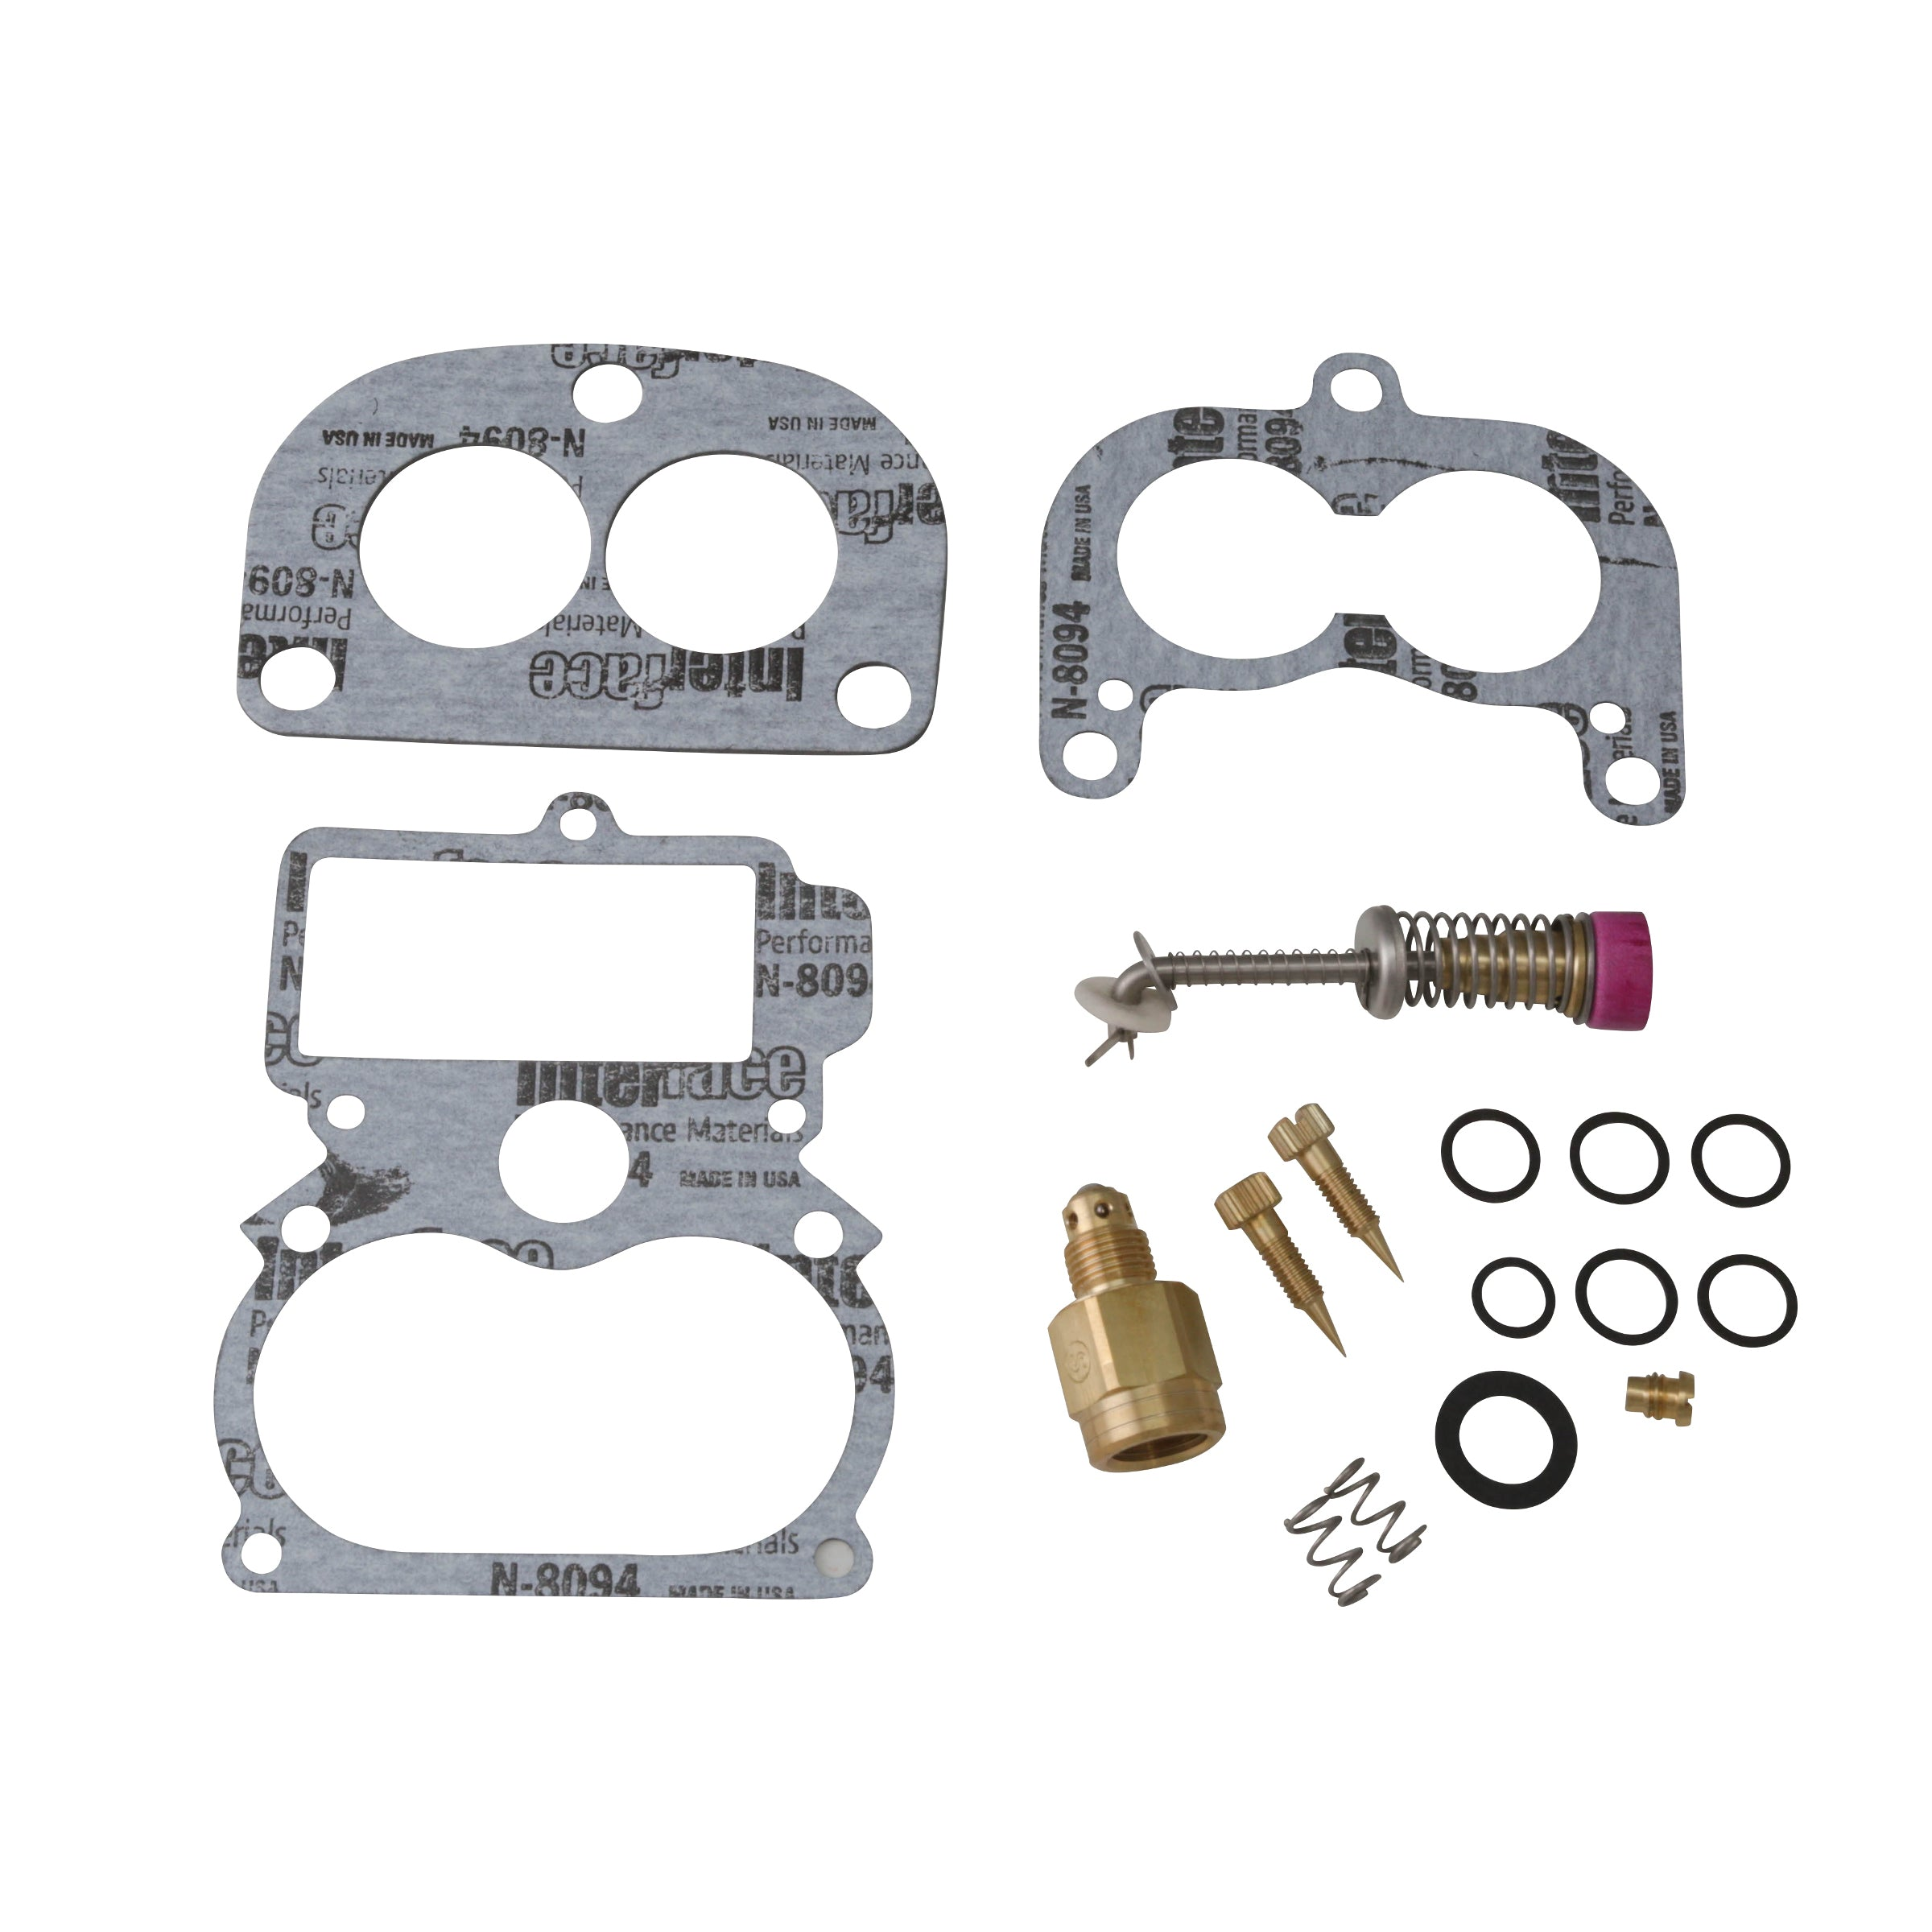 Genuine Stromberg 97 Carburetor Premium Service Kit • 97/48/40